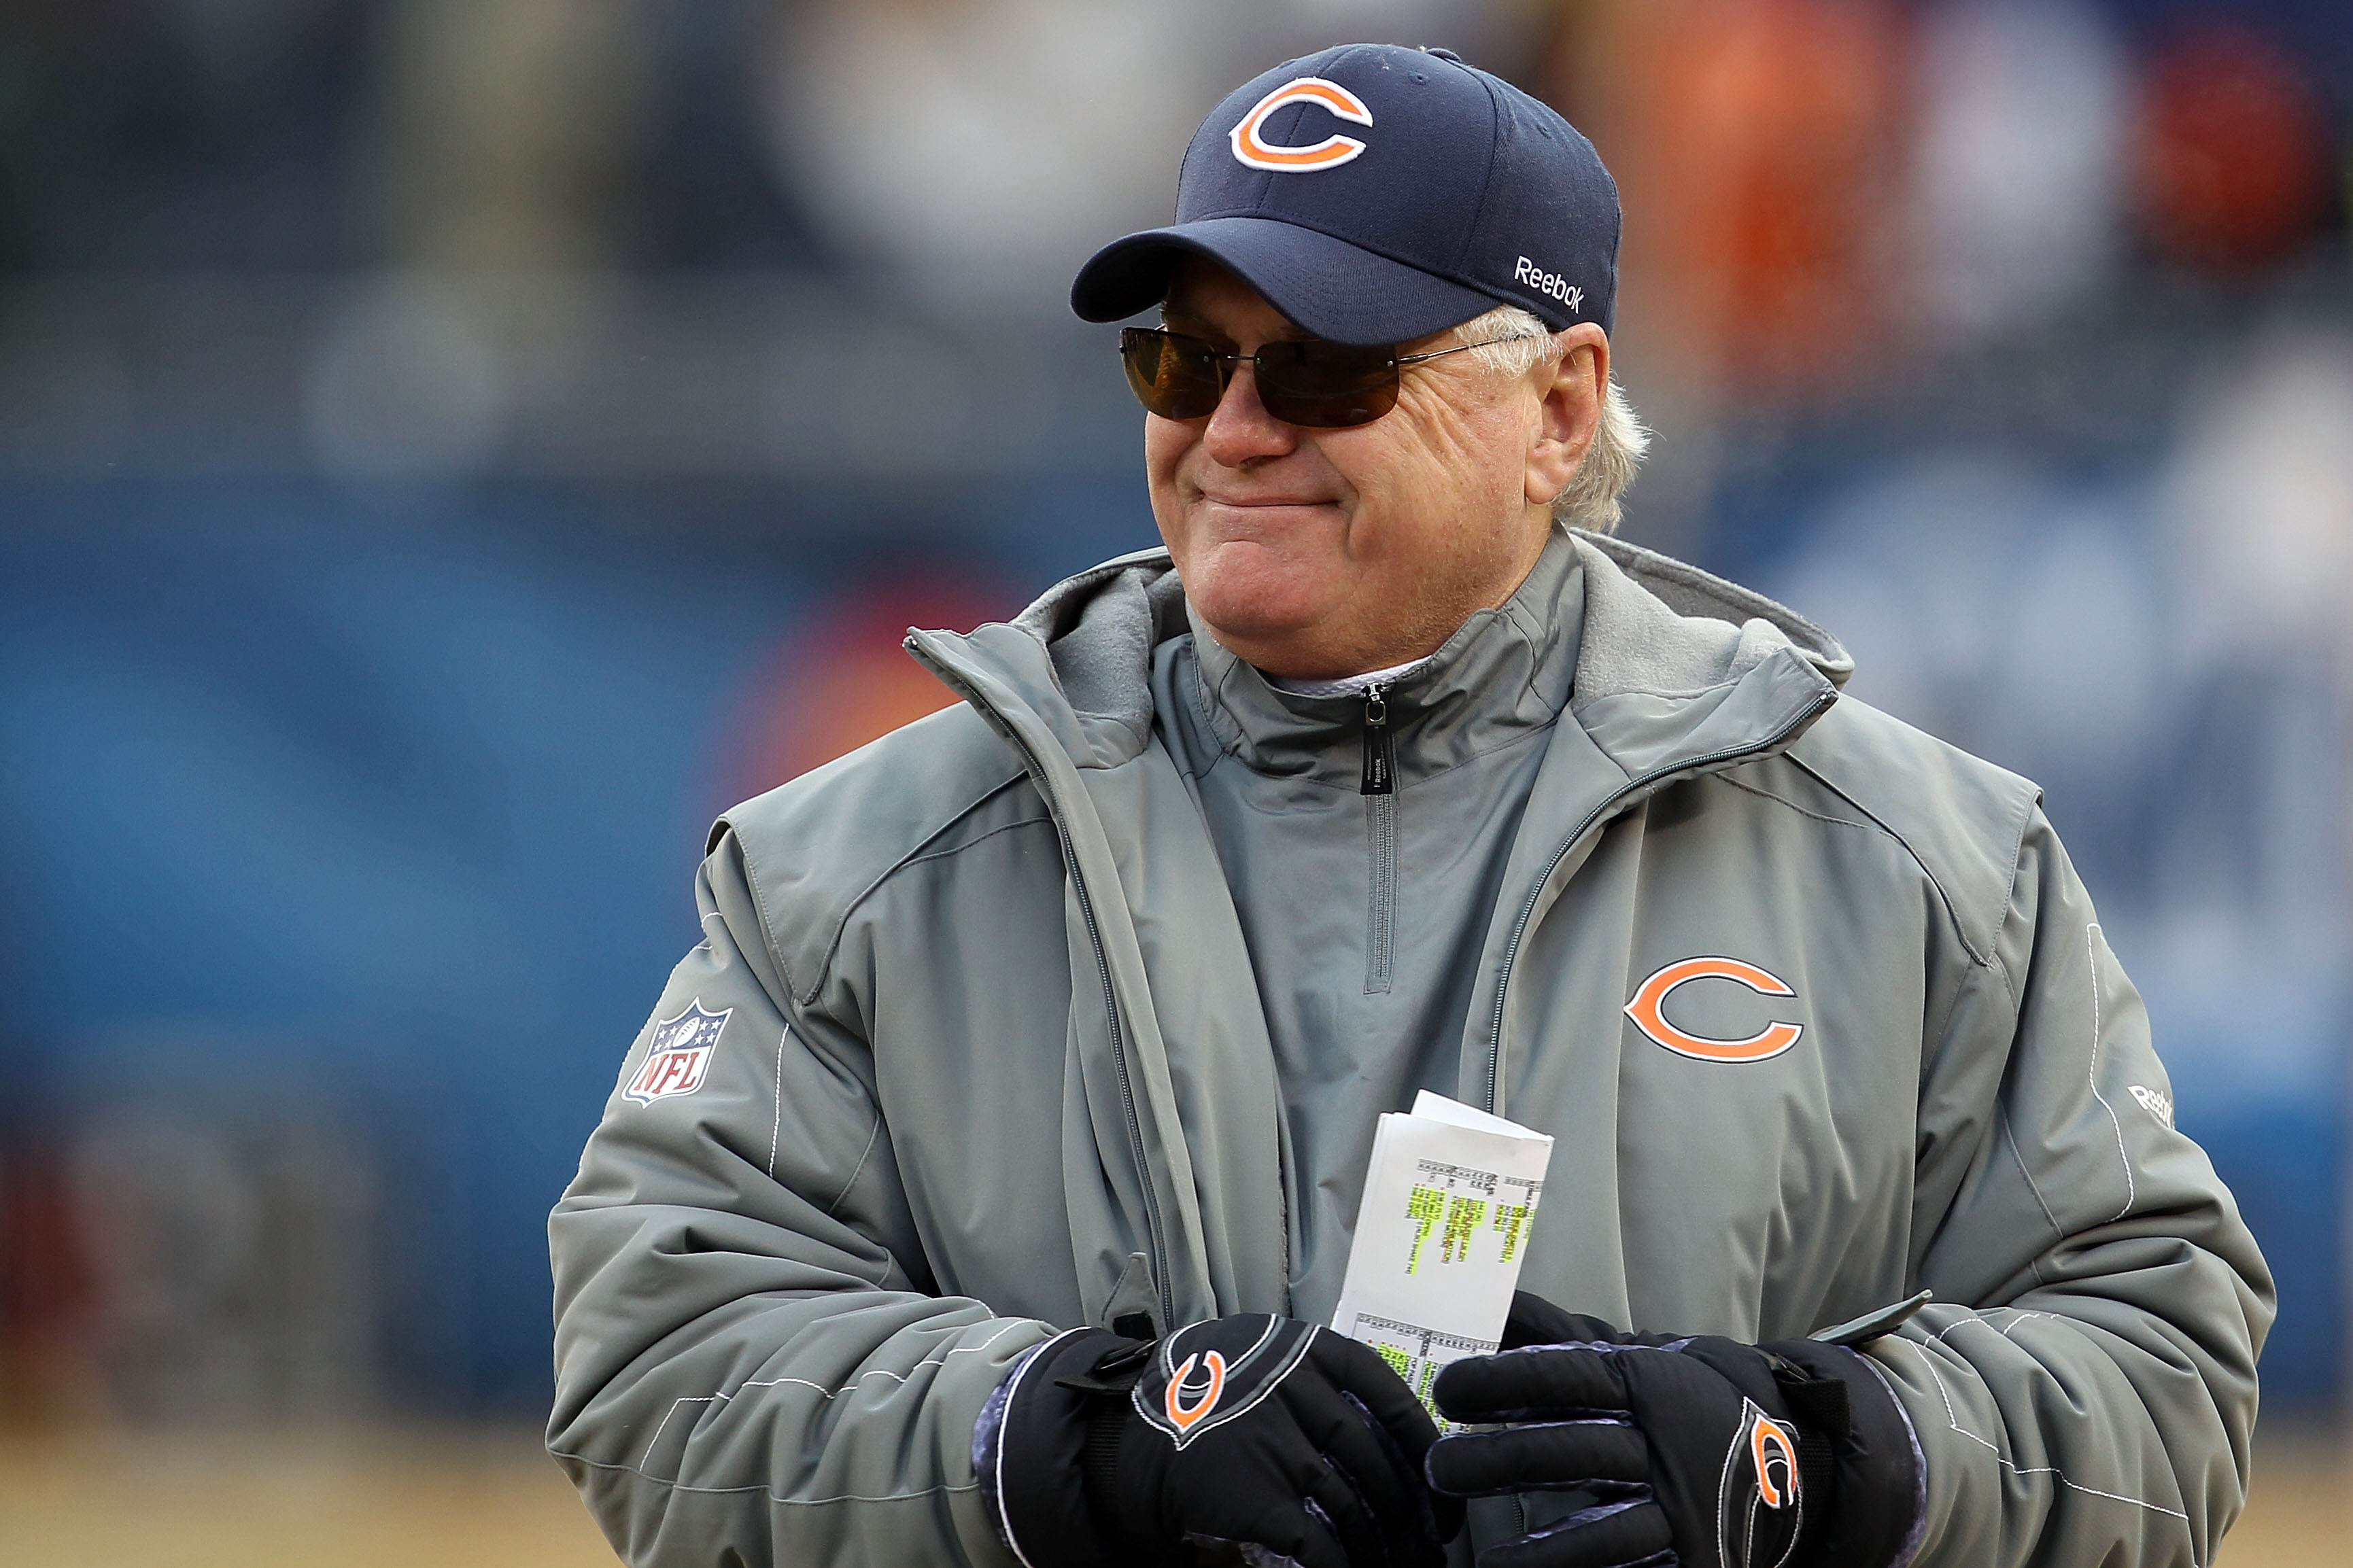 CHICAGO, IL - JANUARY 16:  Offensive coordinator Mike Martz of the Chicago Bears reacts in the second half against the Seattle Seahawks in the 2011 NFC divisional playoff game at Soldier Field on January 16, 2011 in Chicago, Illinois.  (Photo by Jonathan